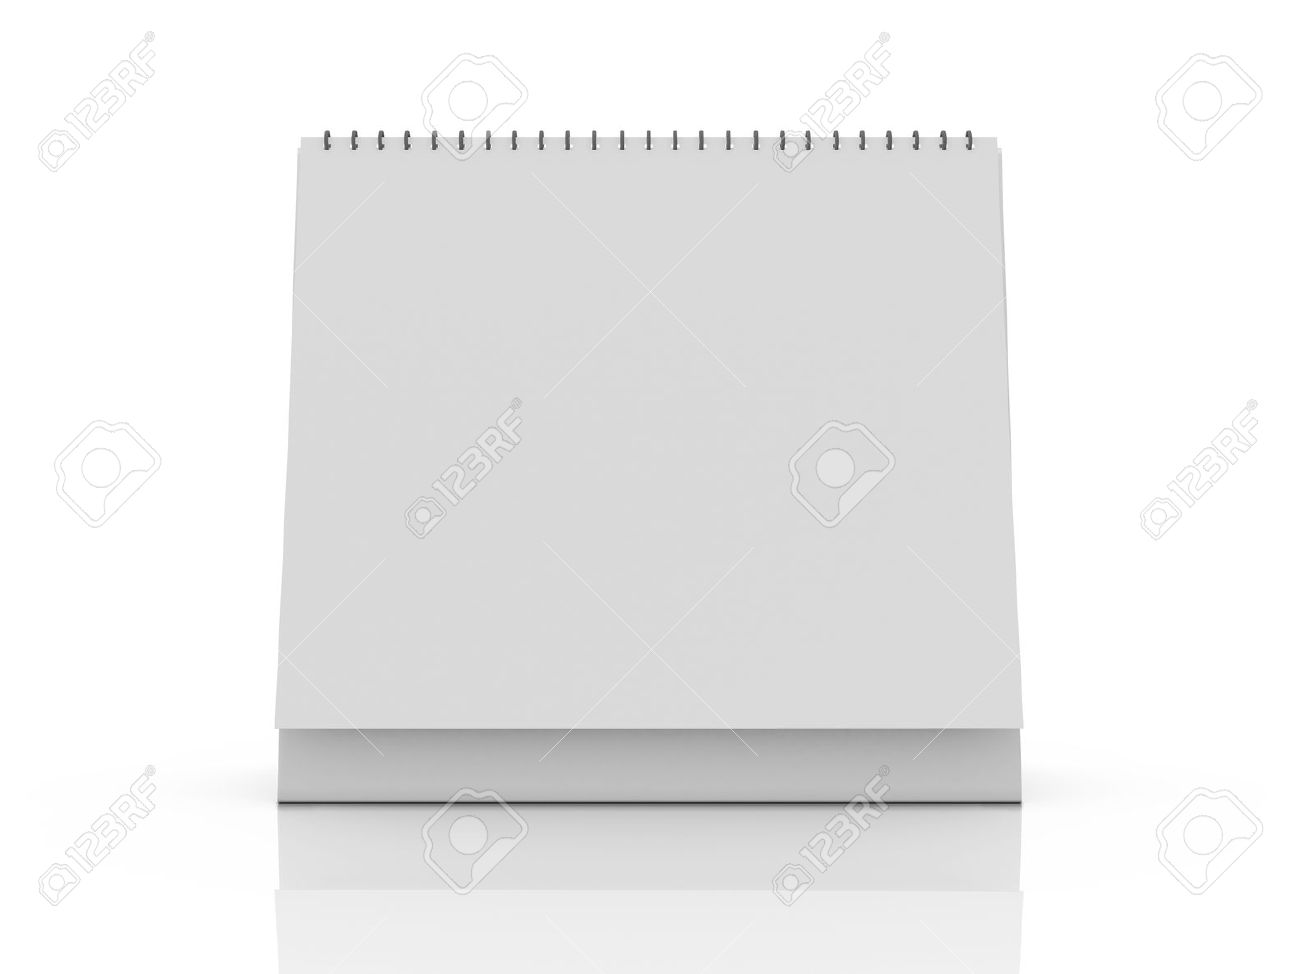 Blank desk calendar with reflection, front view, isolated on white background. Stock Photo - 22591630